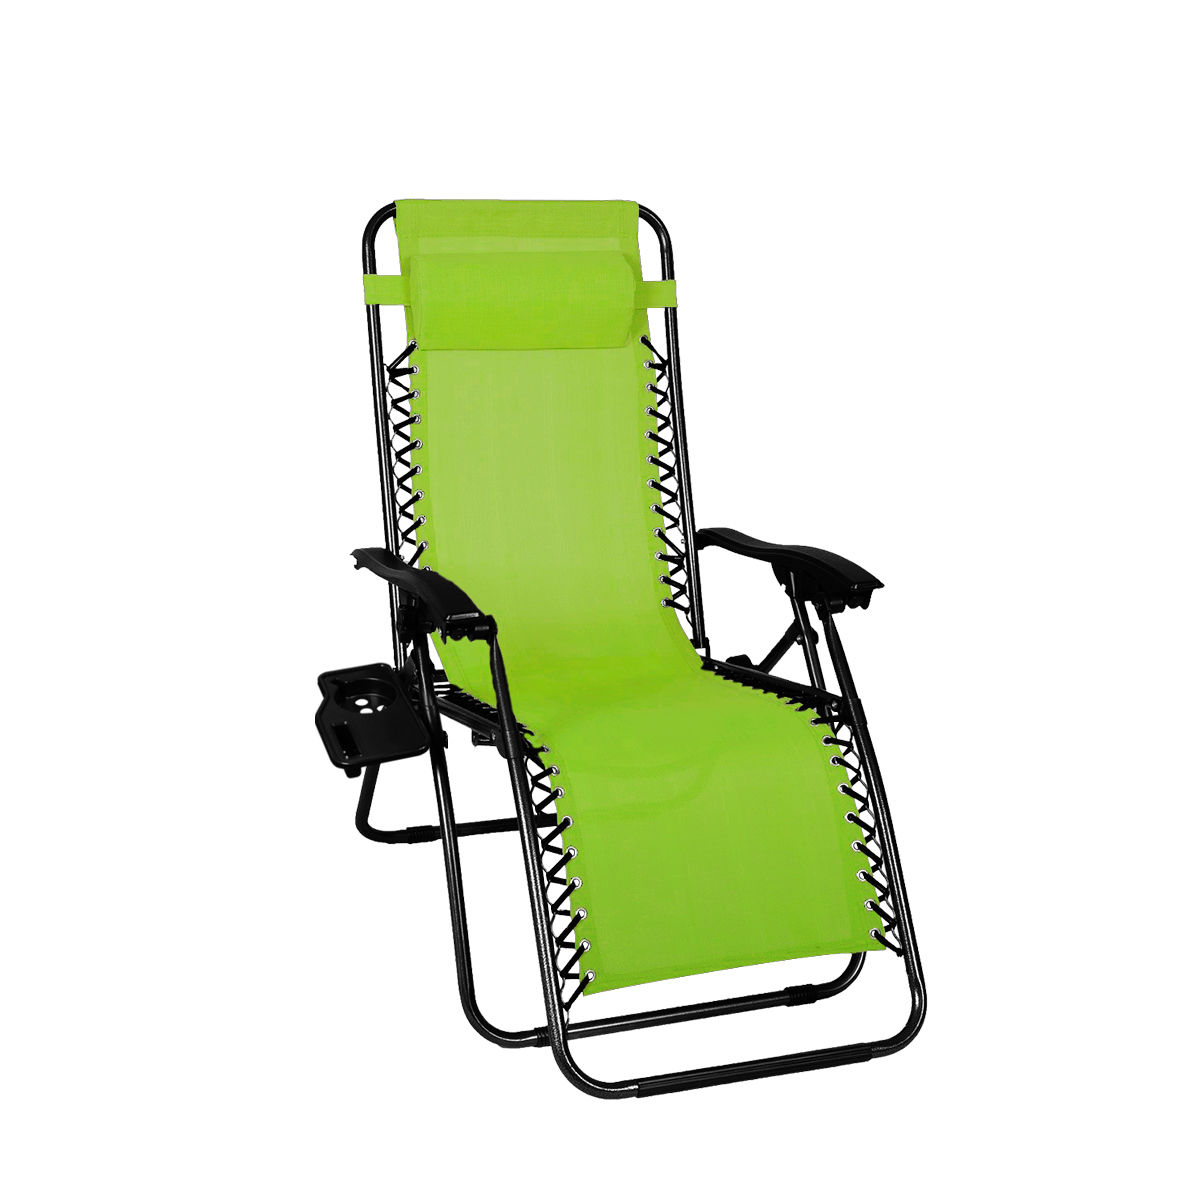 Folding Zero Gravity Reclining Lounge Chair Utility Tray